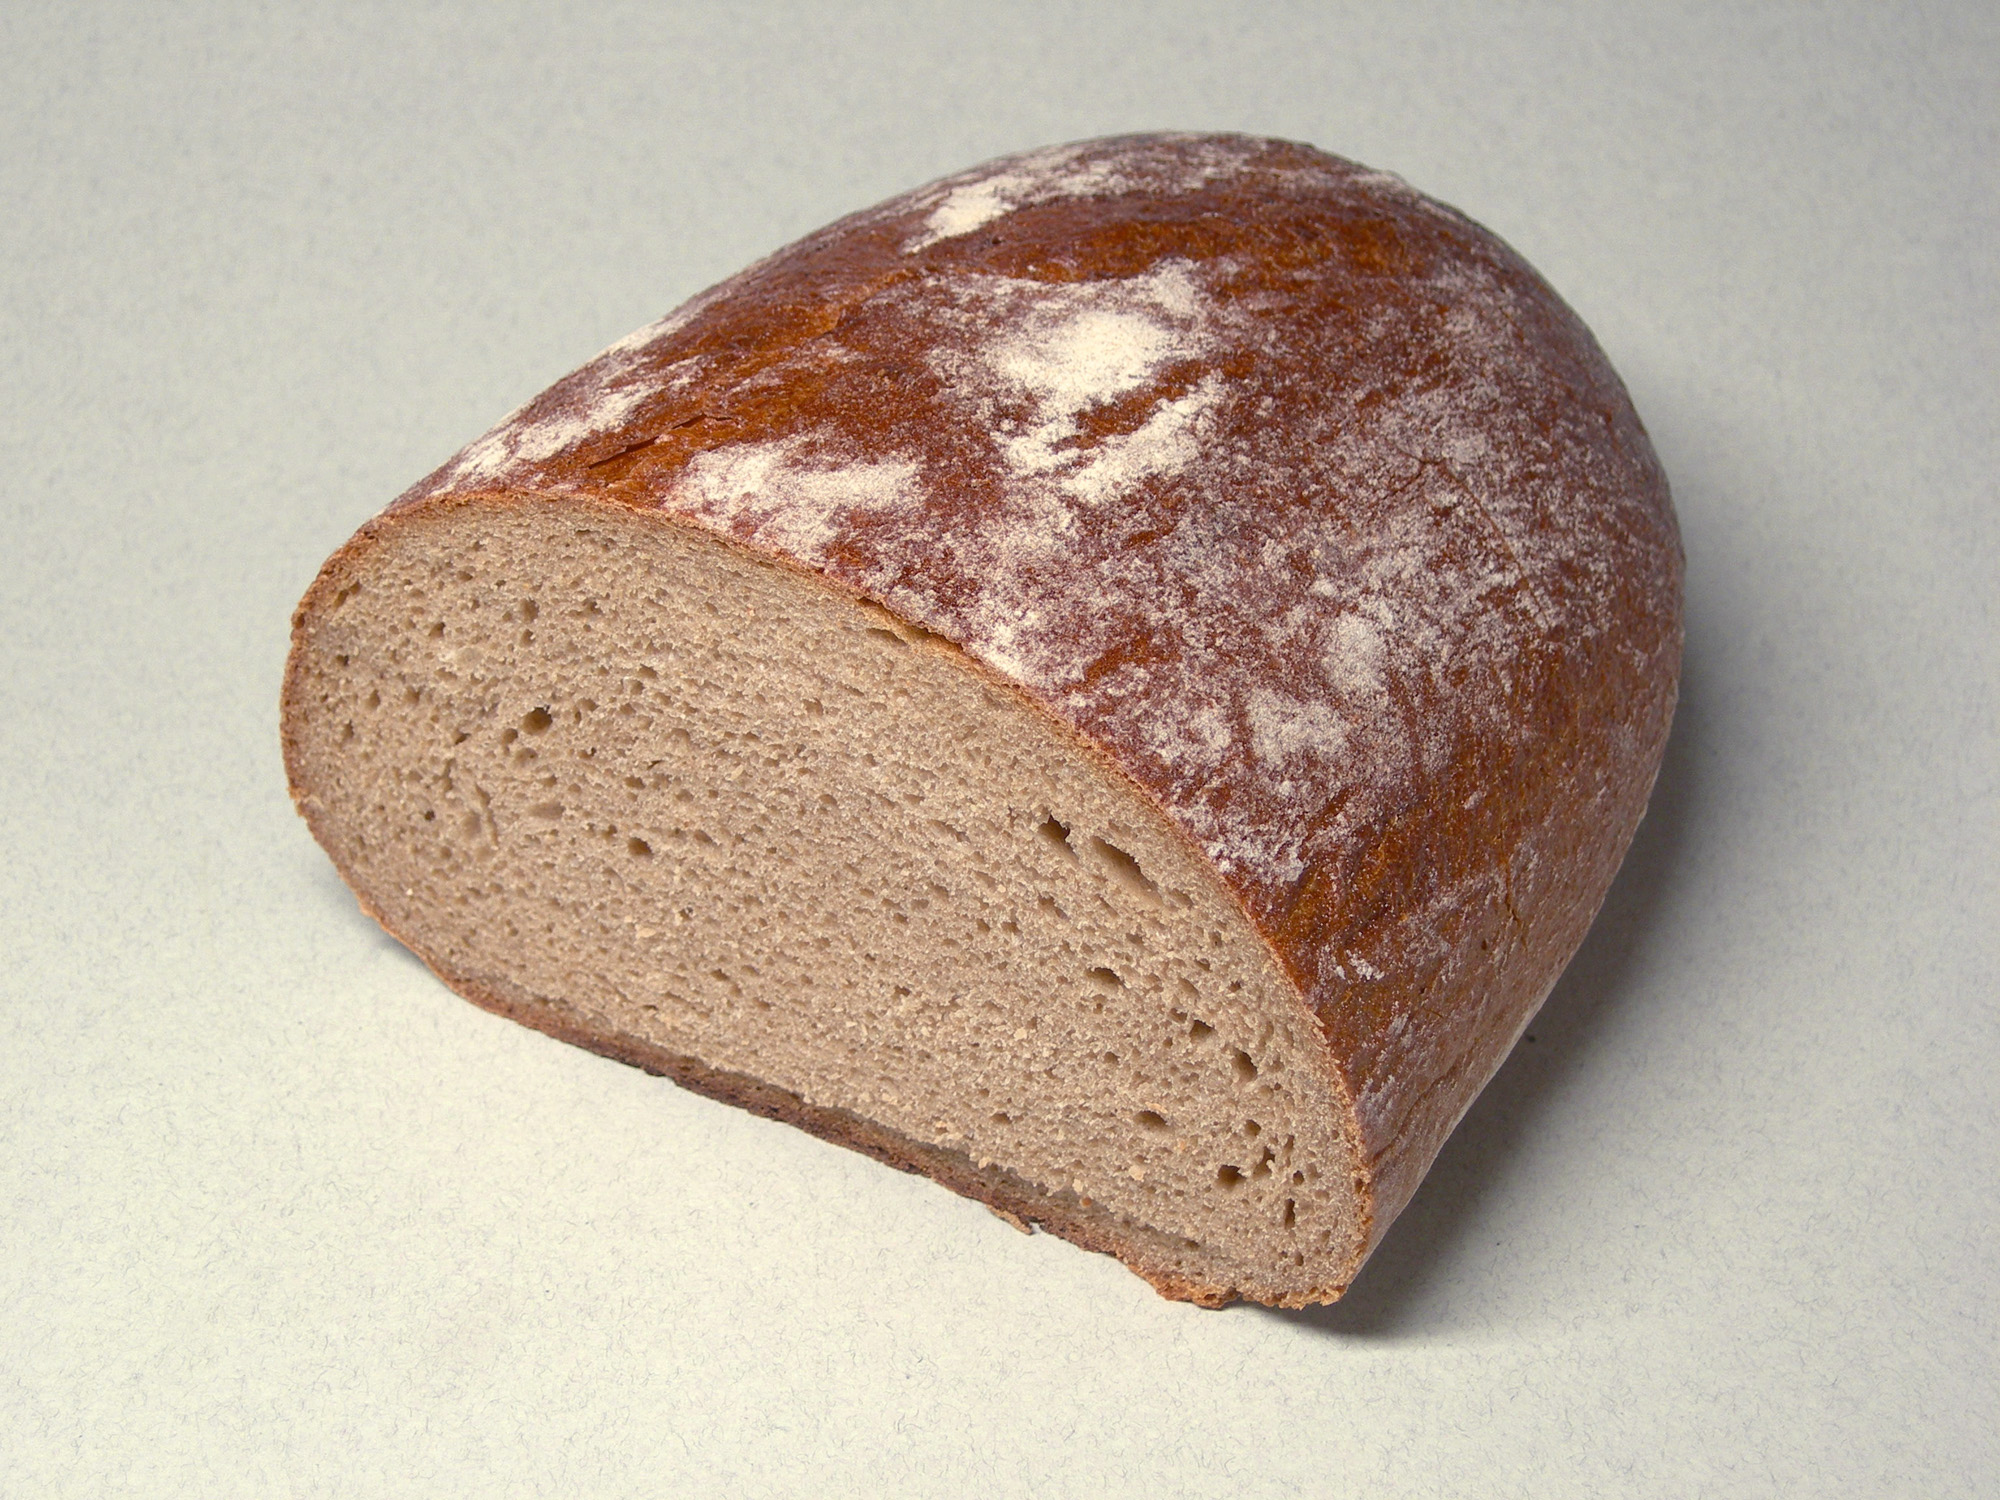 Deutsche Kuche Bread File Mischbrot 1 Jpg Wikimedia Commons